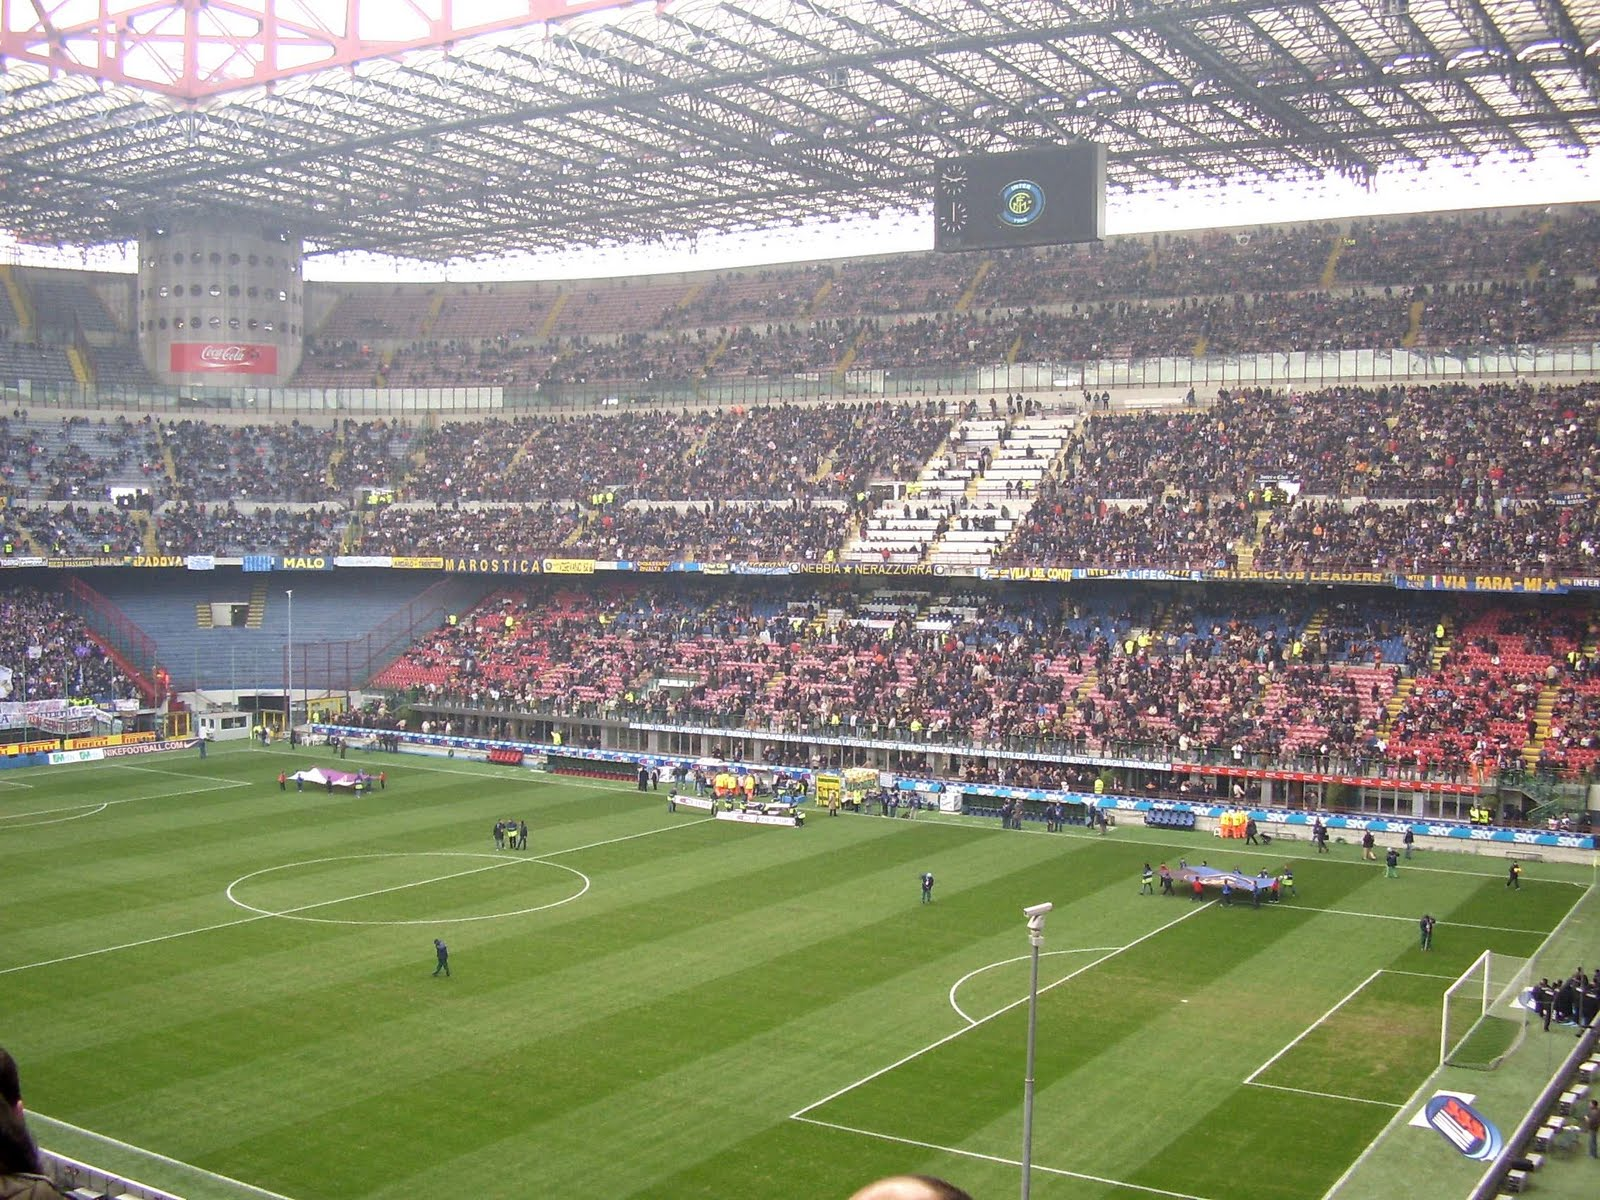 k 225 san siro milan - photo#18